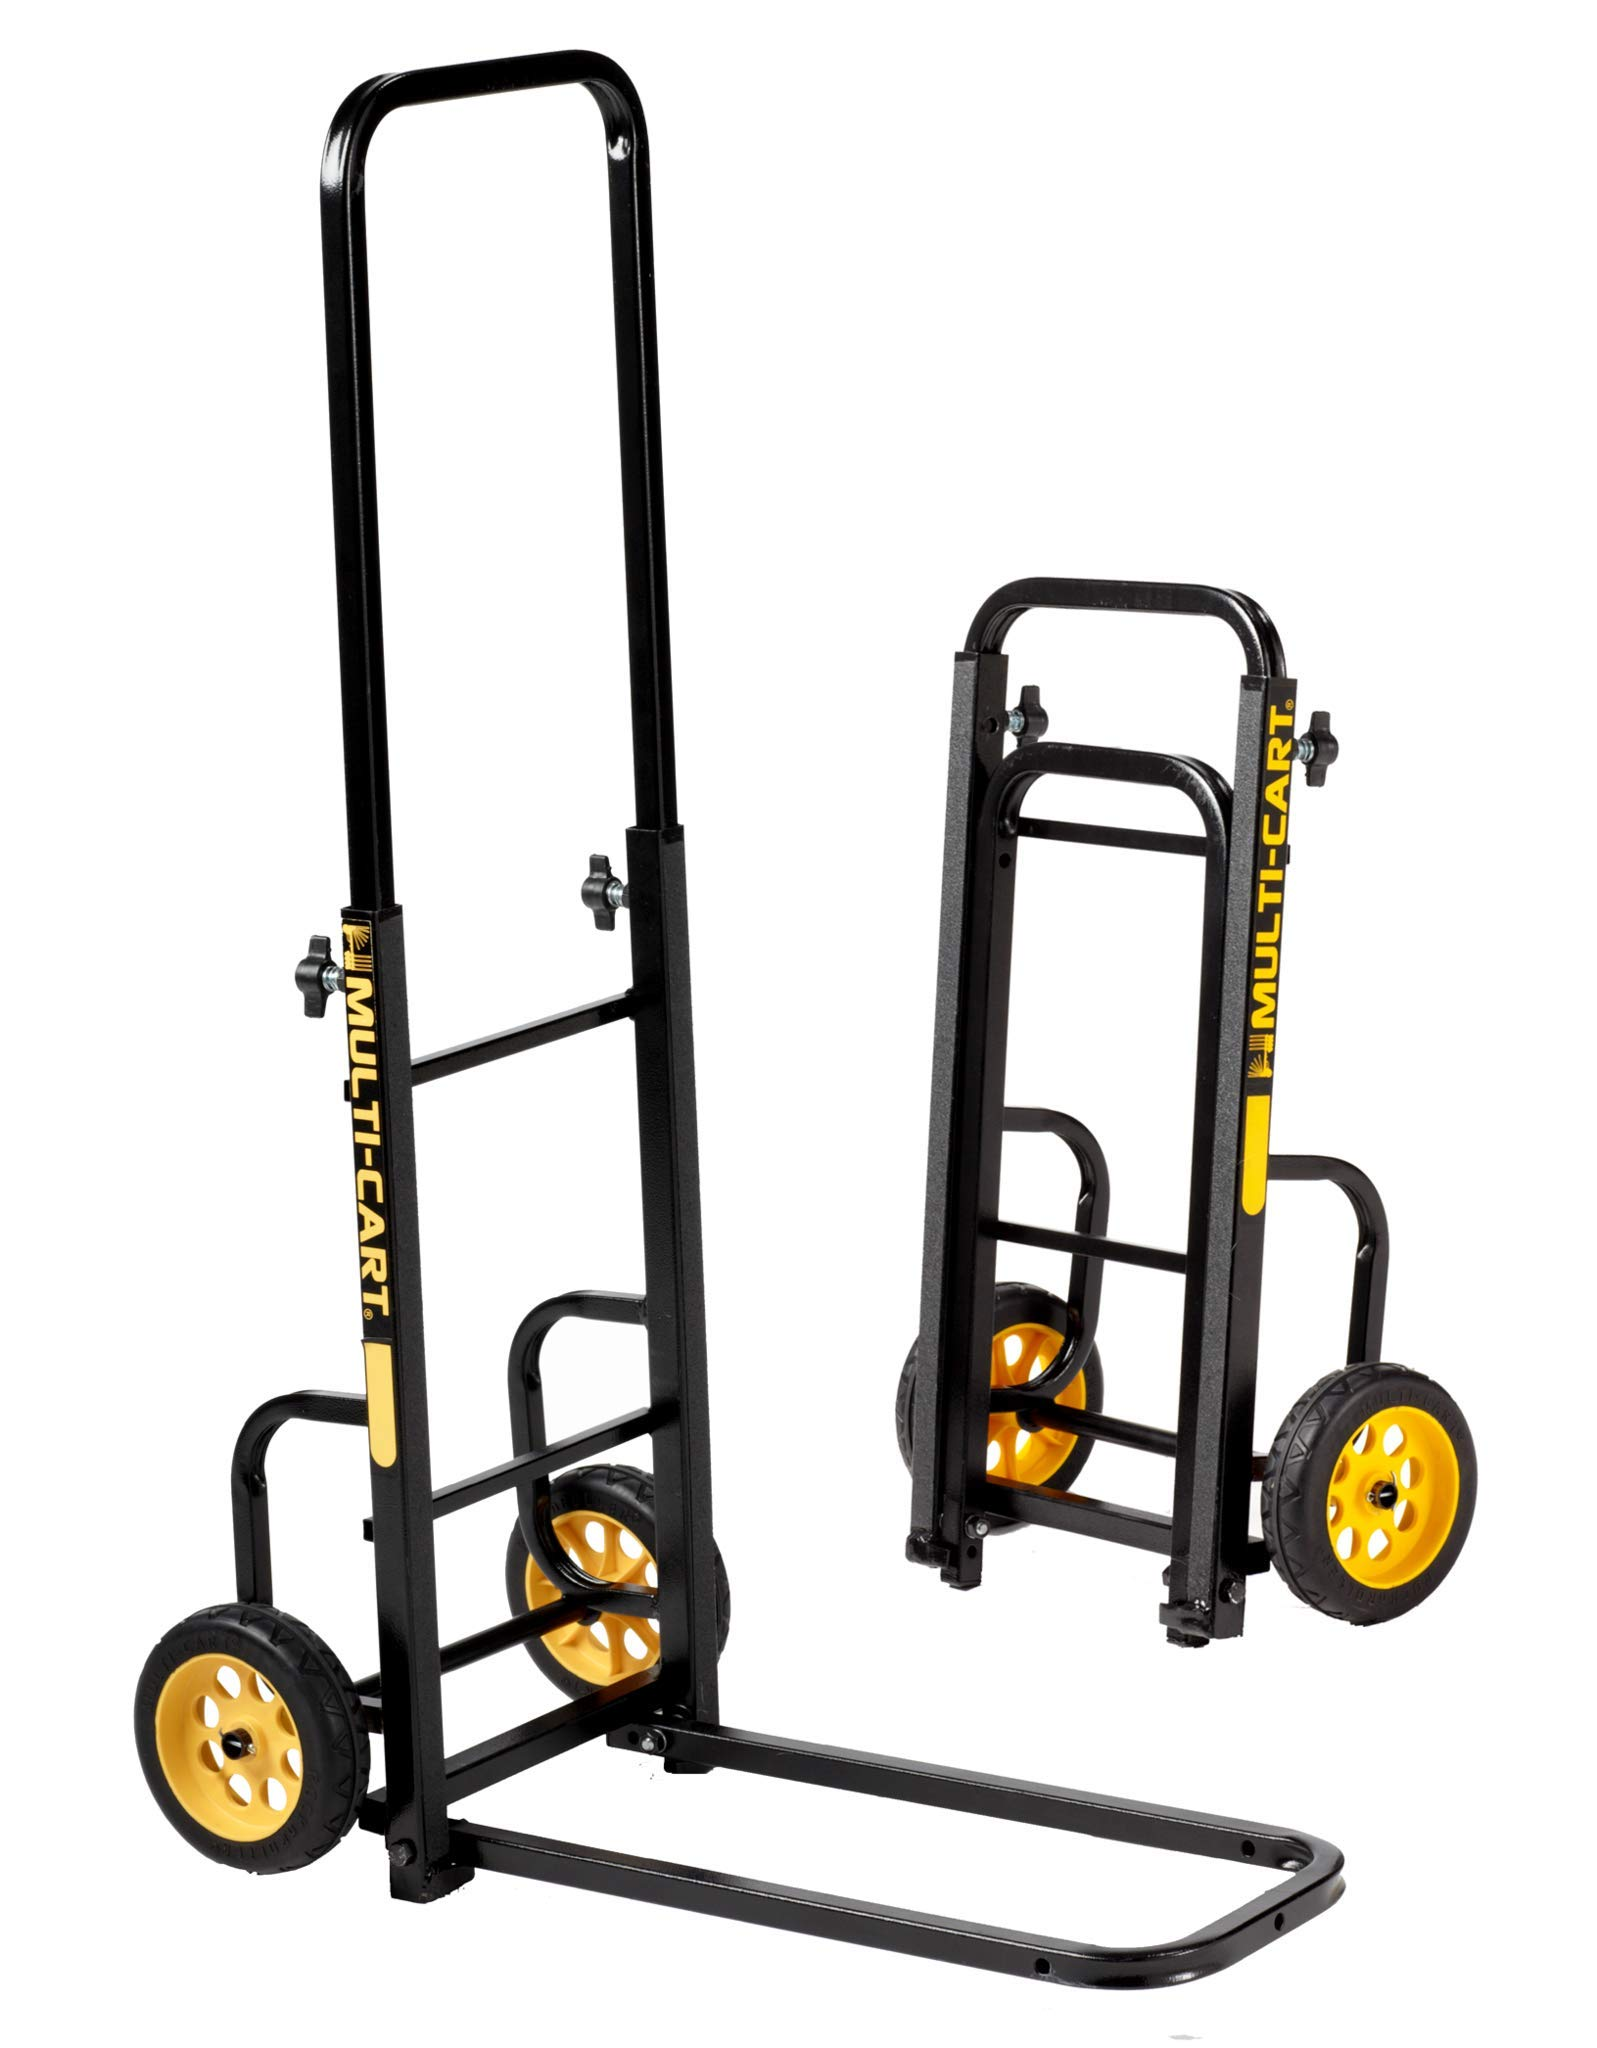 Rock-N-Roller RMH1 Mini-Handtruck with 200 lbs. Load Capacity, Black